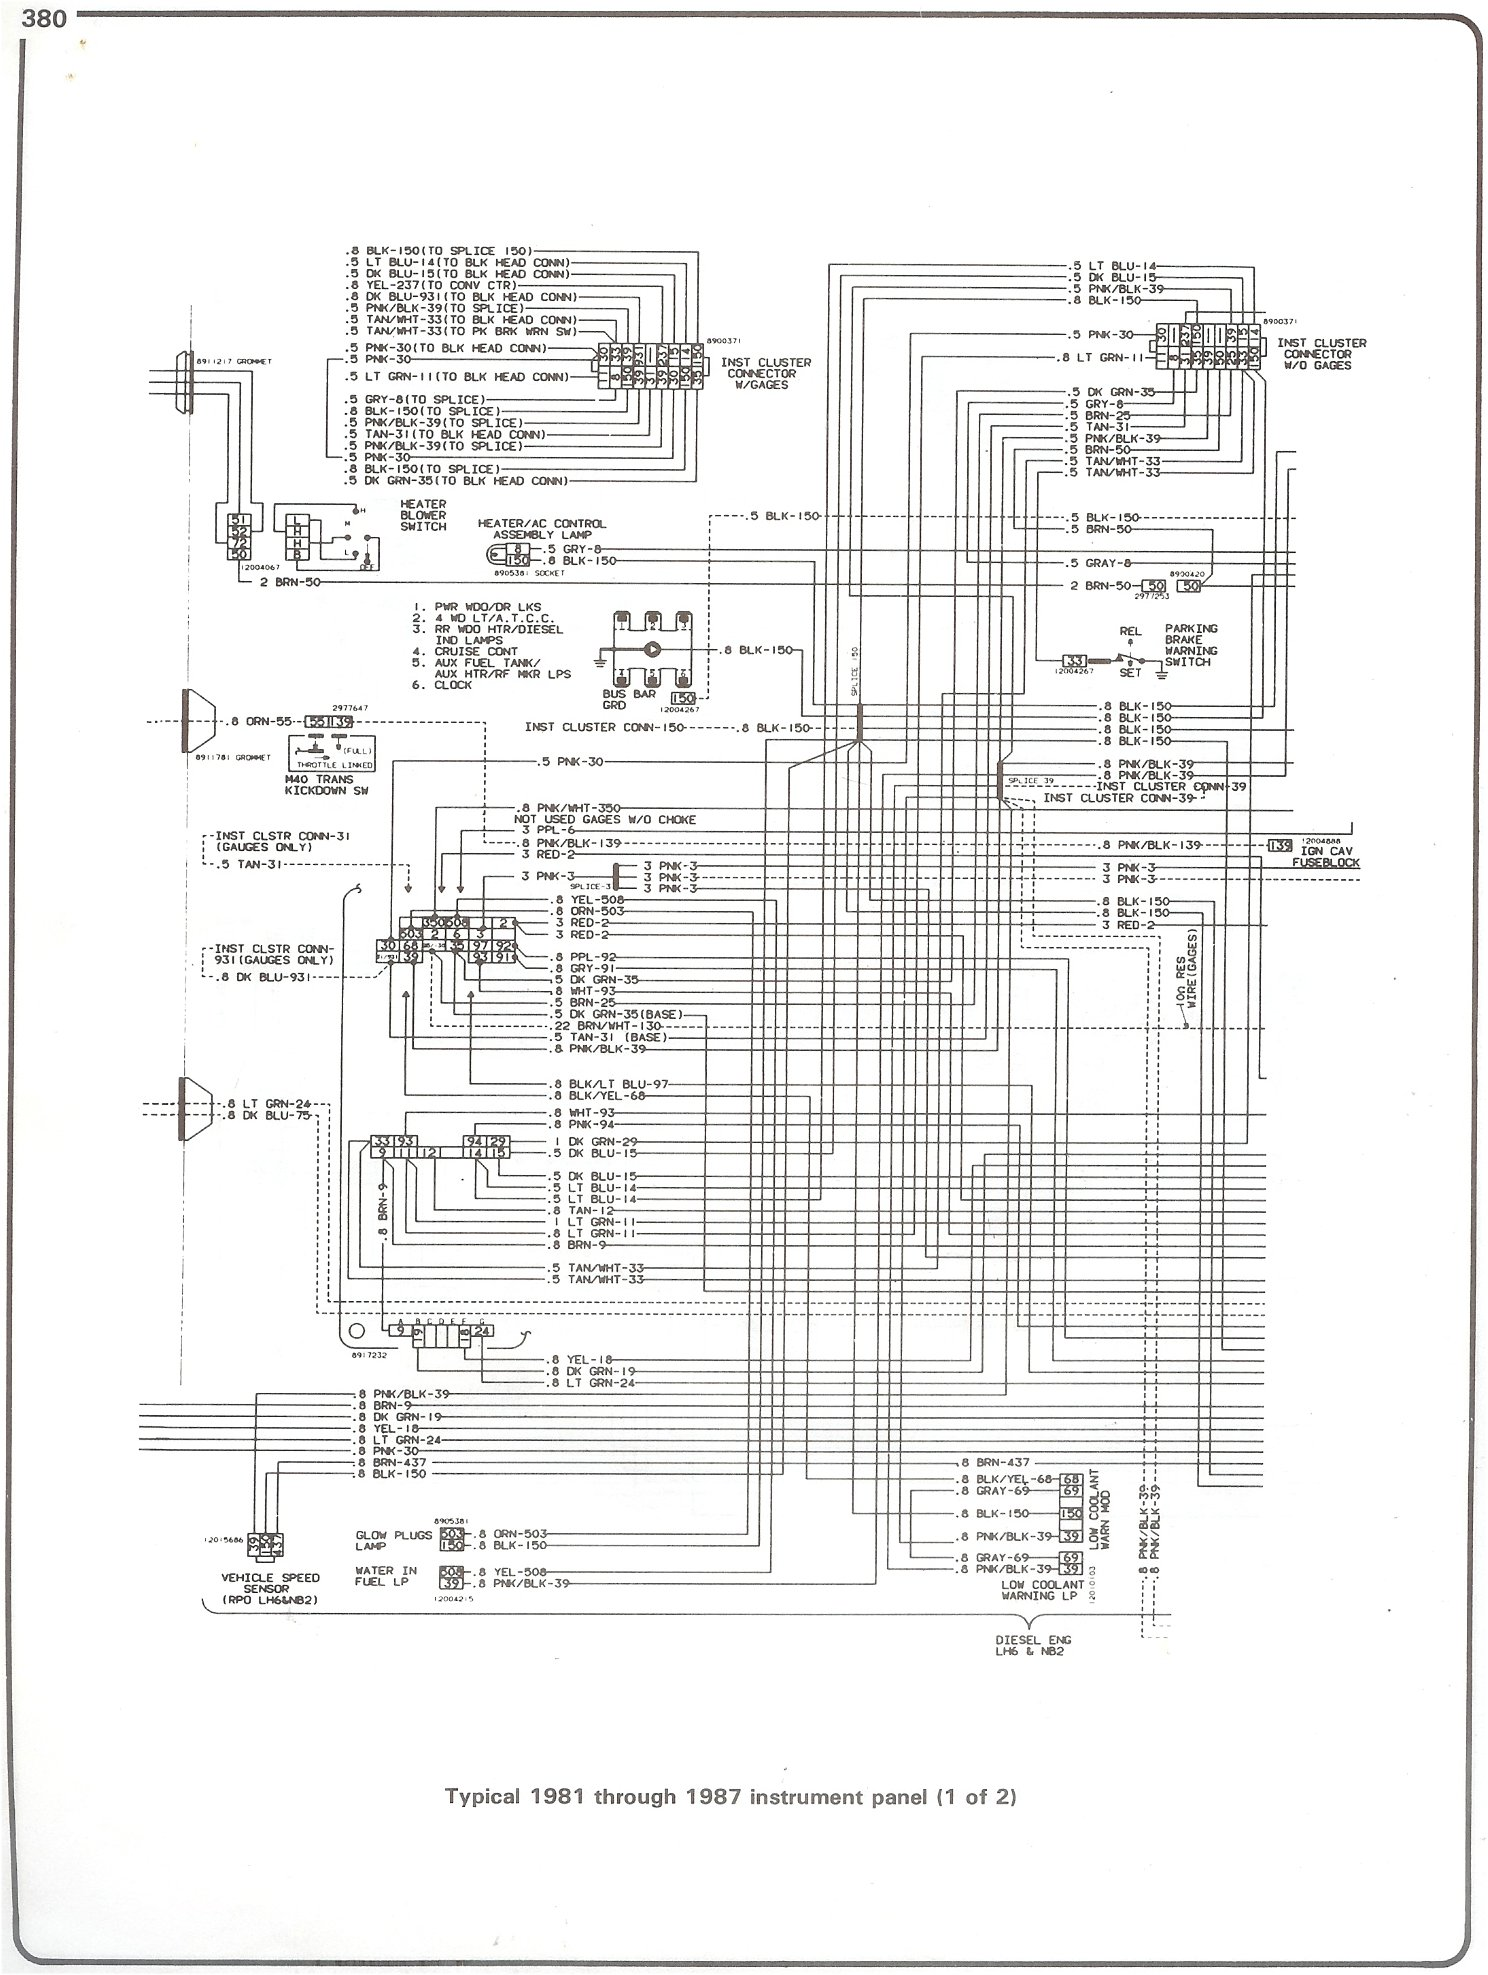 1977 chevy truck wiring diagram vnvRTEj free chevy truck wiring diagrams chevrolet wiring diagram \u2022 wiring chevy truck engine diagram at reclaimingppi.co